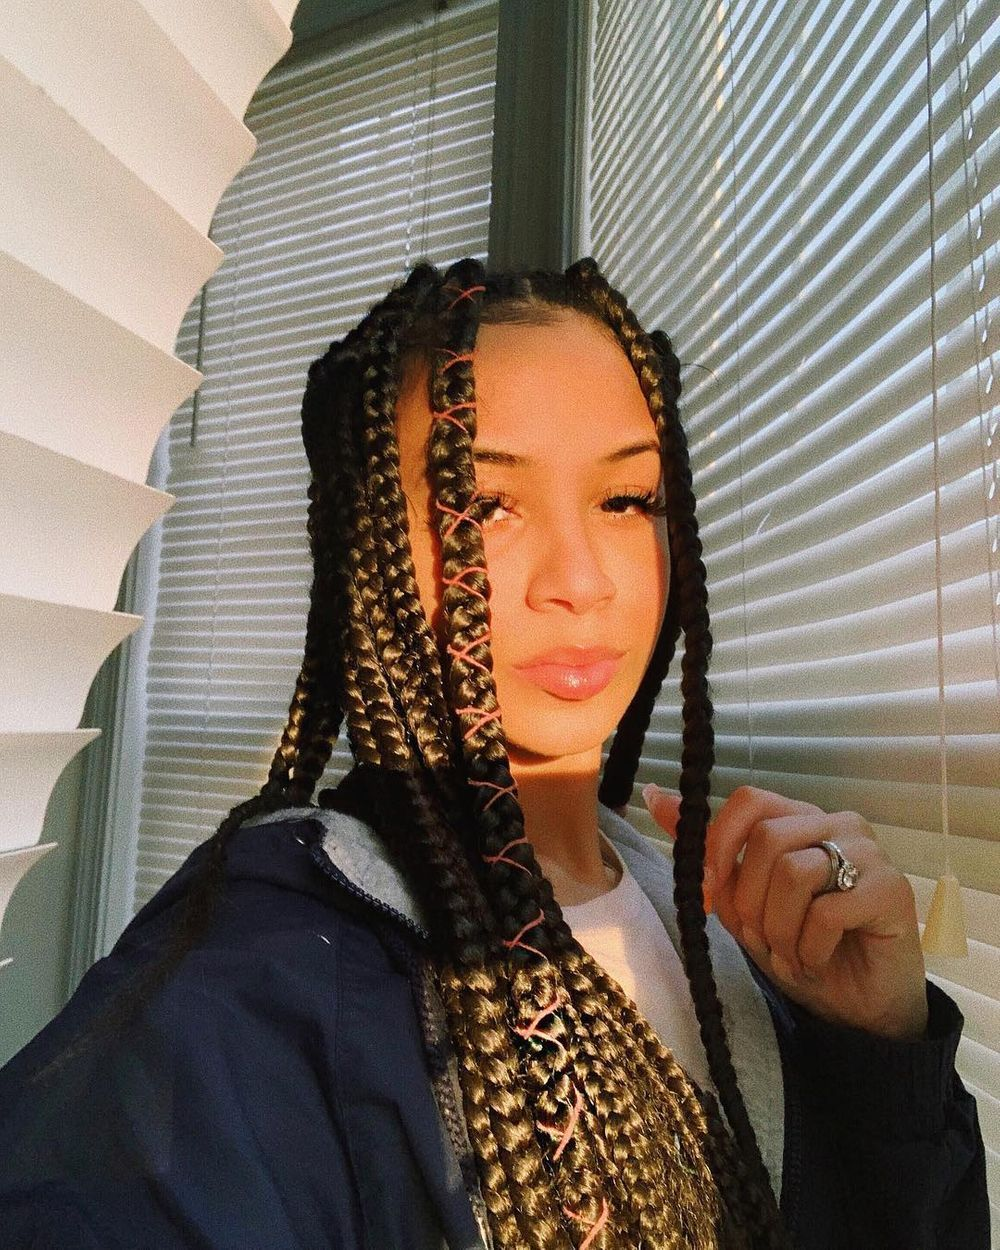 T.I.'s Daughter, Deyjah Harris Breaks The Internet With These Pics – She Rocks A Skin-Tight Pink Dress And Latex Boots: 'The Barbie You Can't Play With'